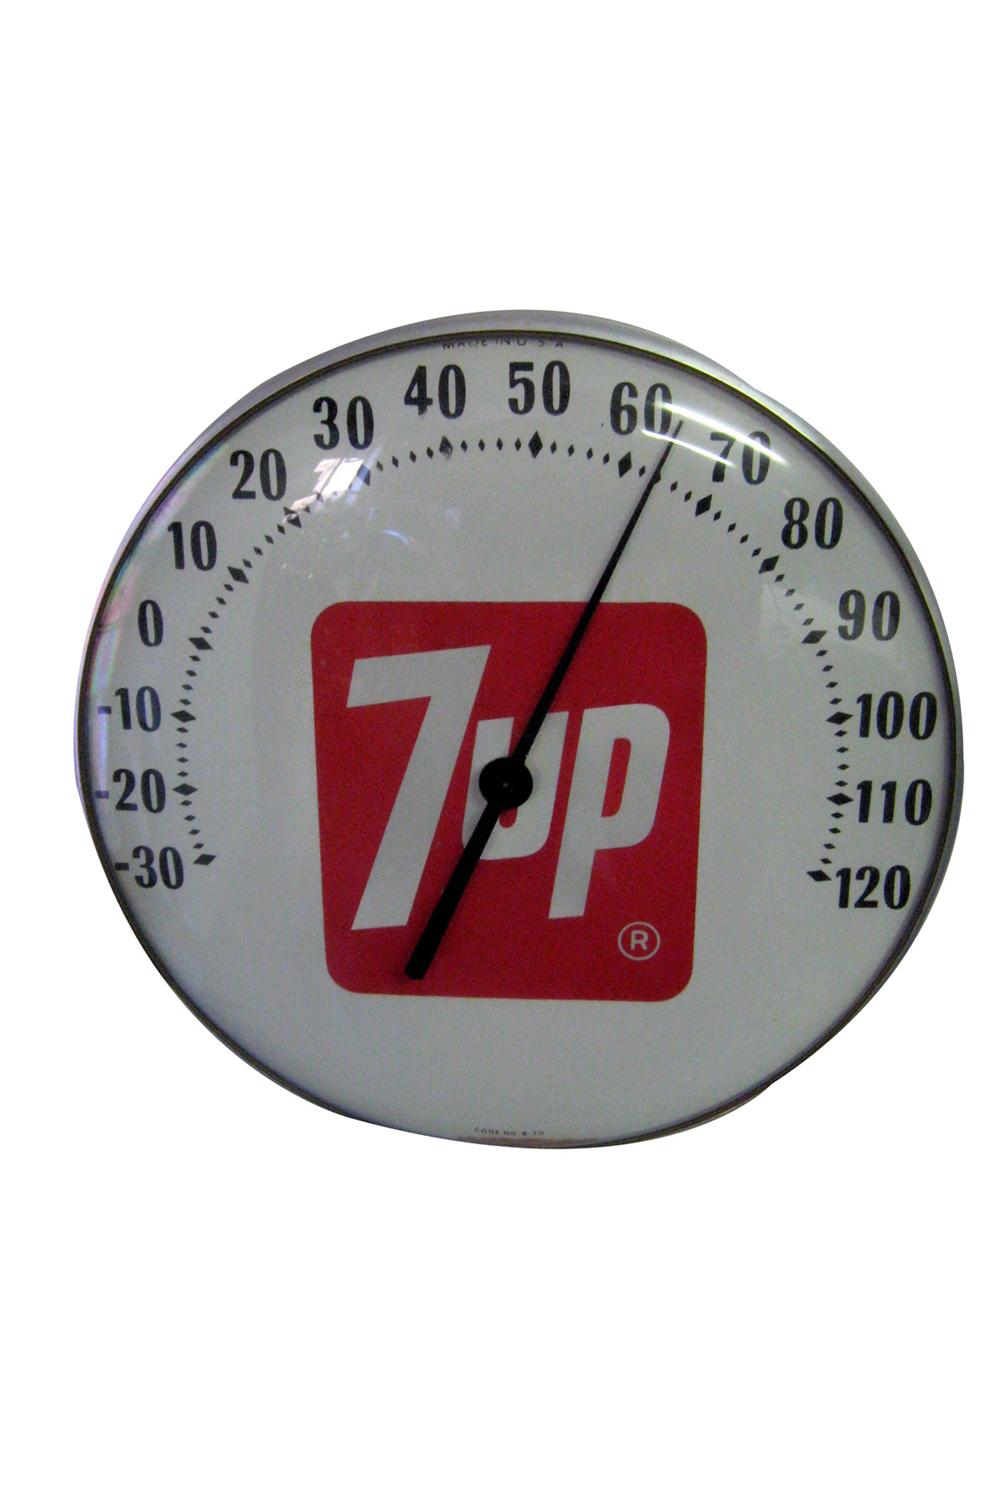 1960s 7-up Soda service station glass faced dial style thermometer. - Front 3/4 - 97813